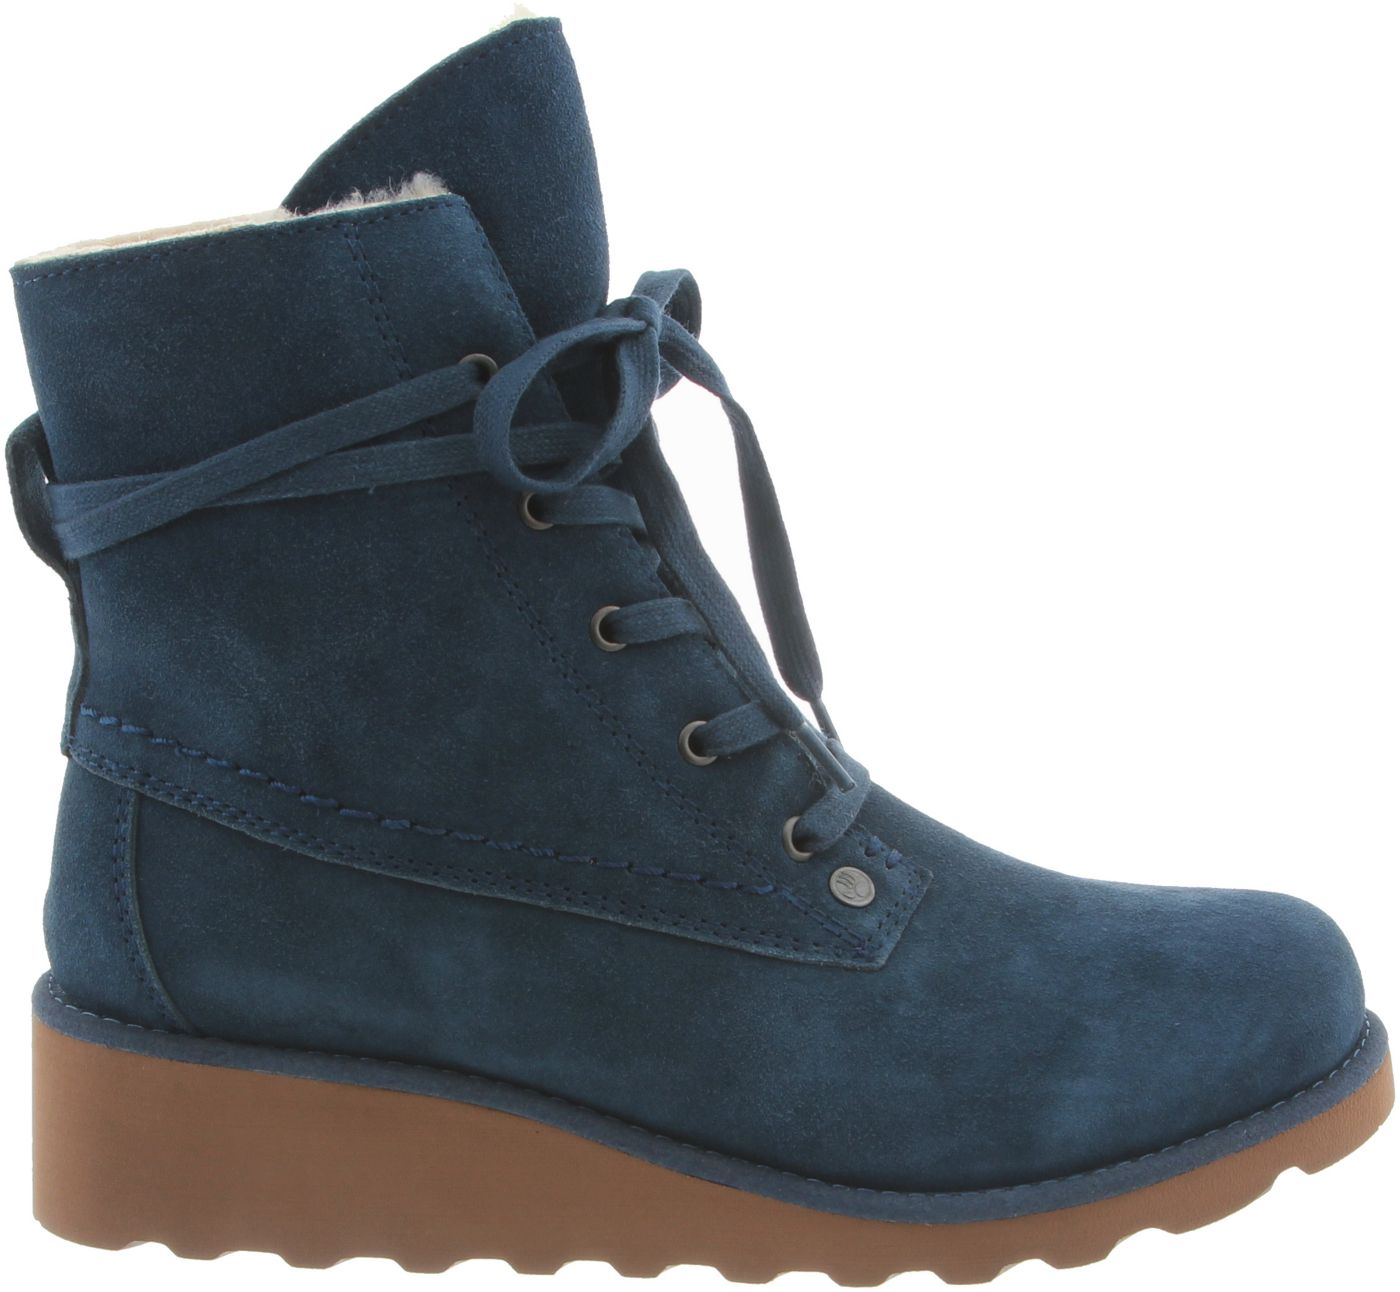 BEARPAW Women's Krista II Winter Boots